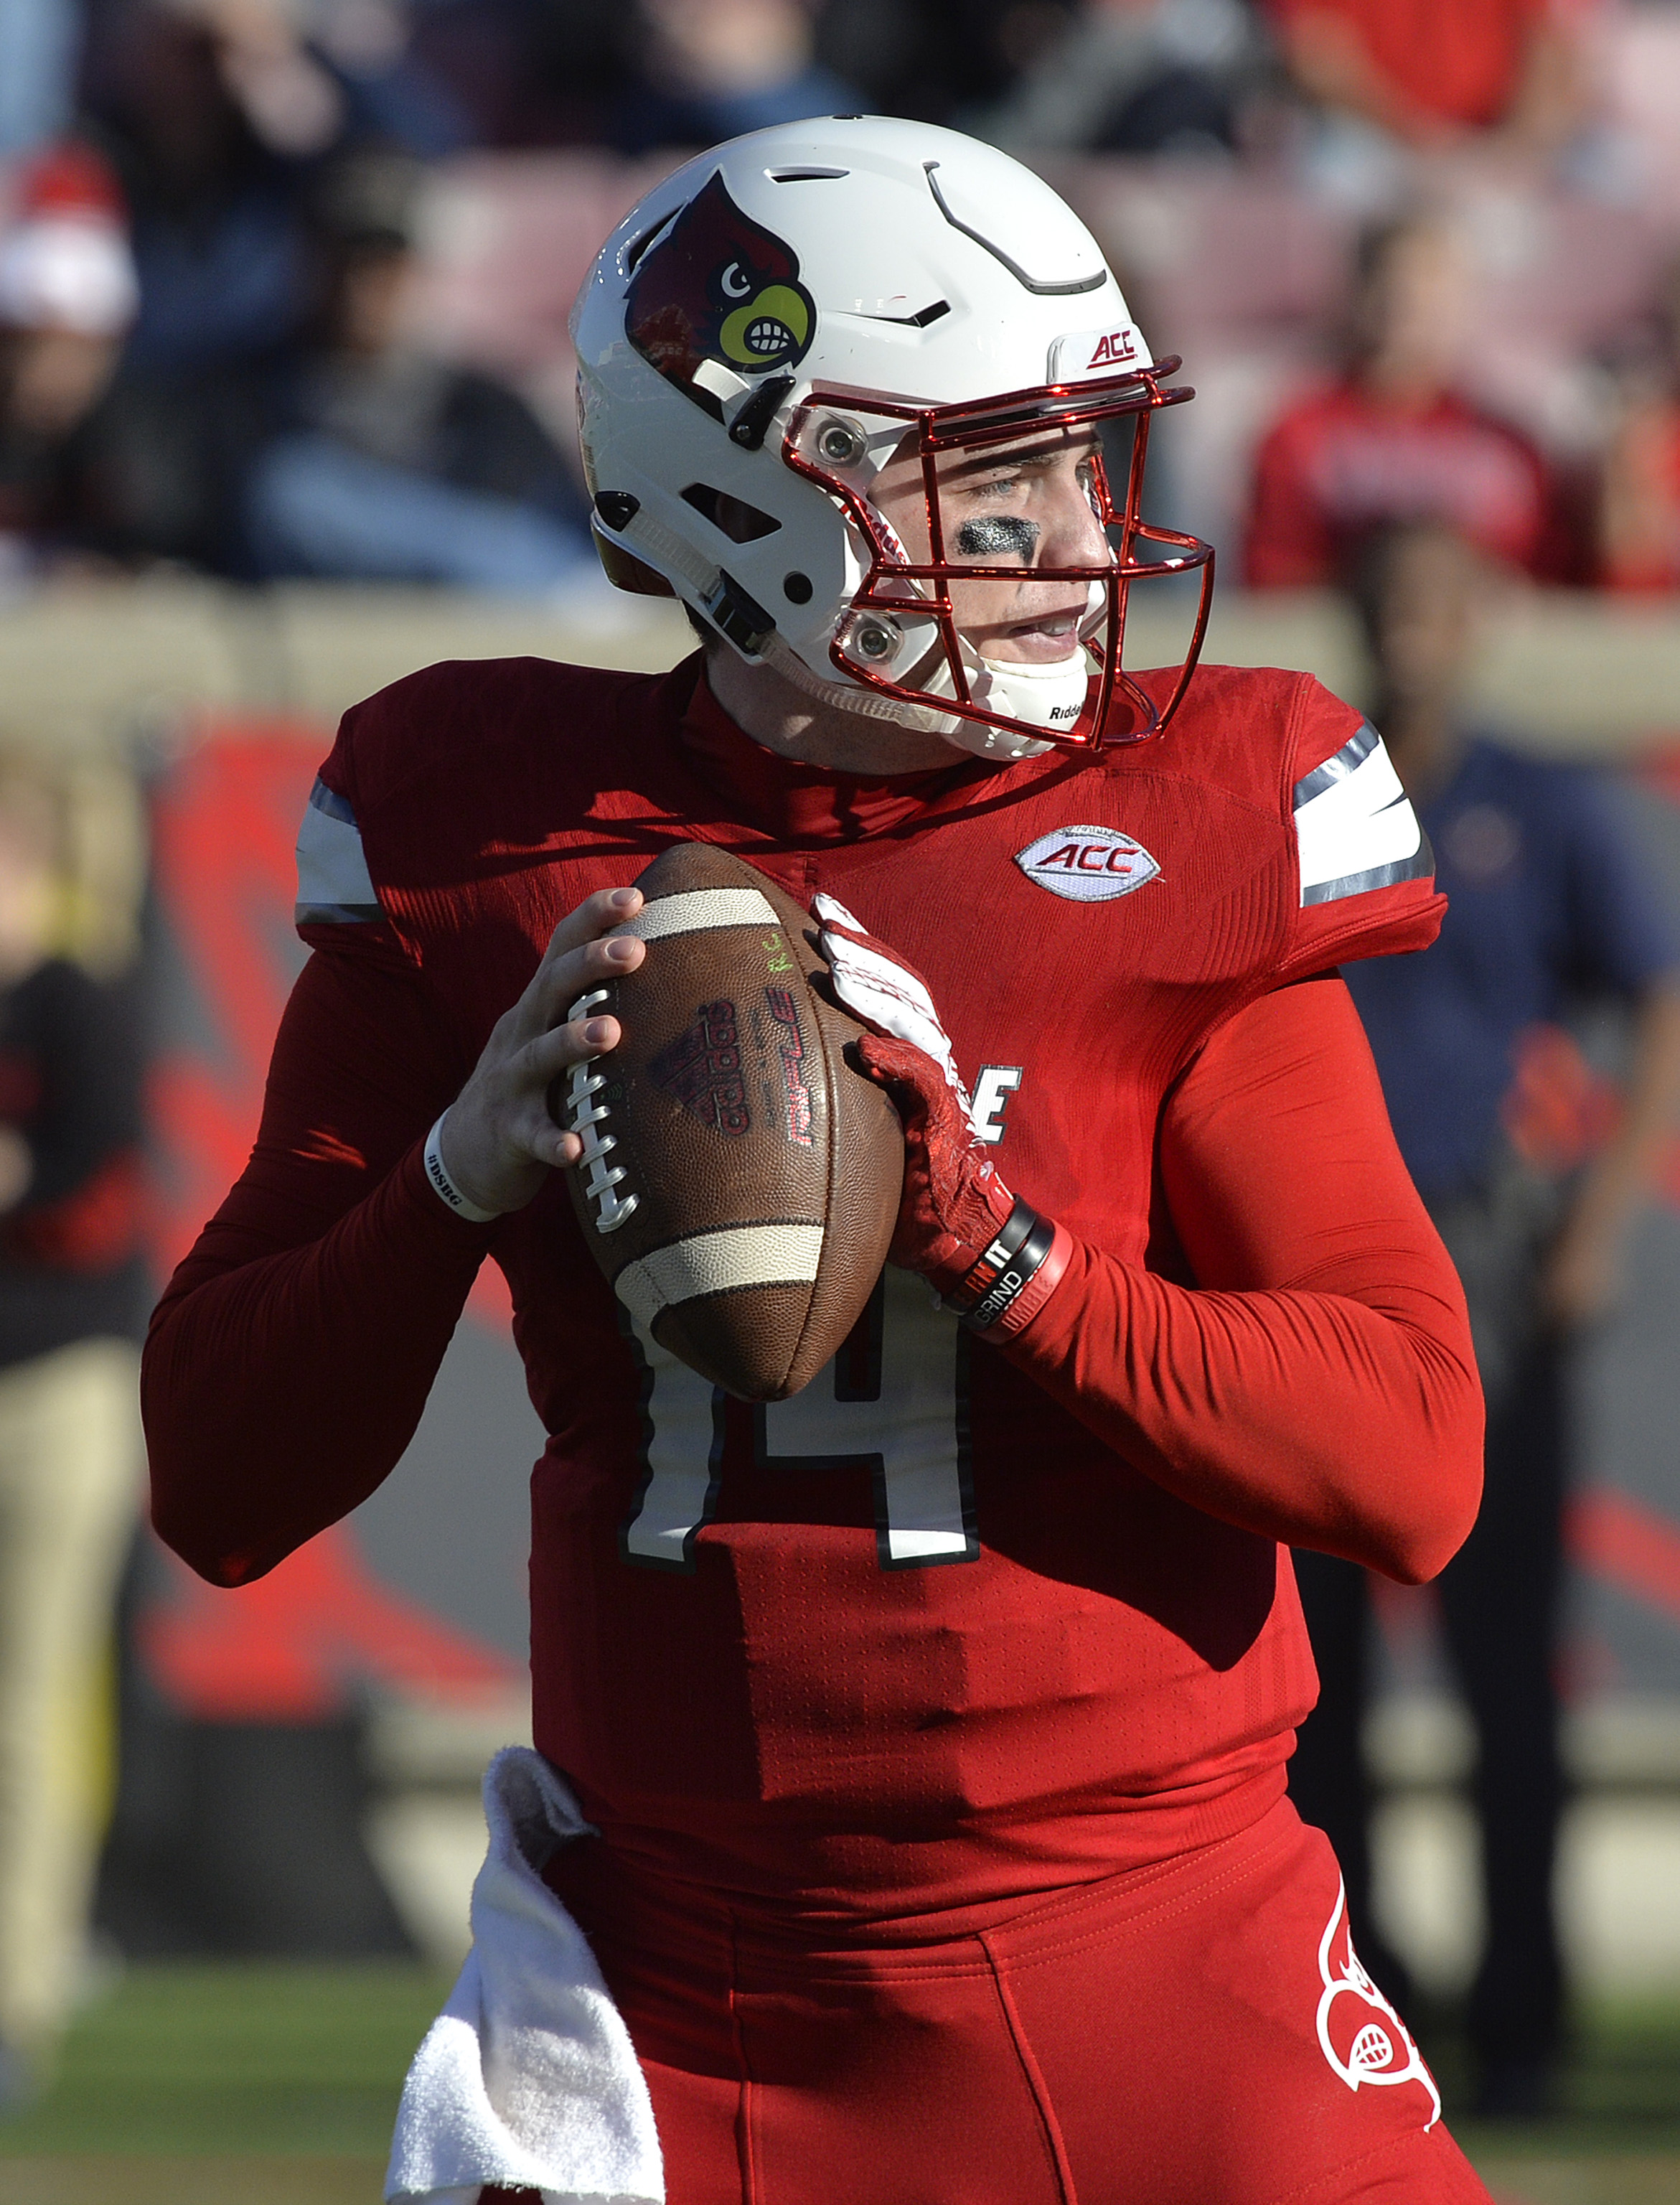 Louisville quarterback Kyle Bolin (14) looks for an open receiver during the second half of an NCAA college football game against Virginia, Saturday, Nov. 14, 2015, in Louisville, Ky. Louisville won 38-31. (AP Photo/Timothy D. Easley)